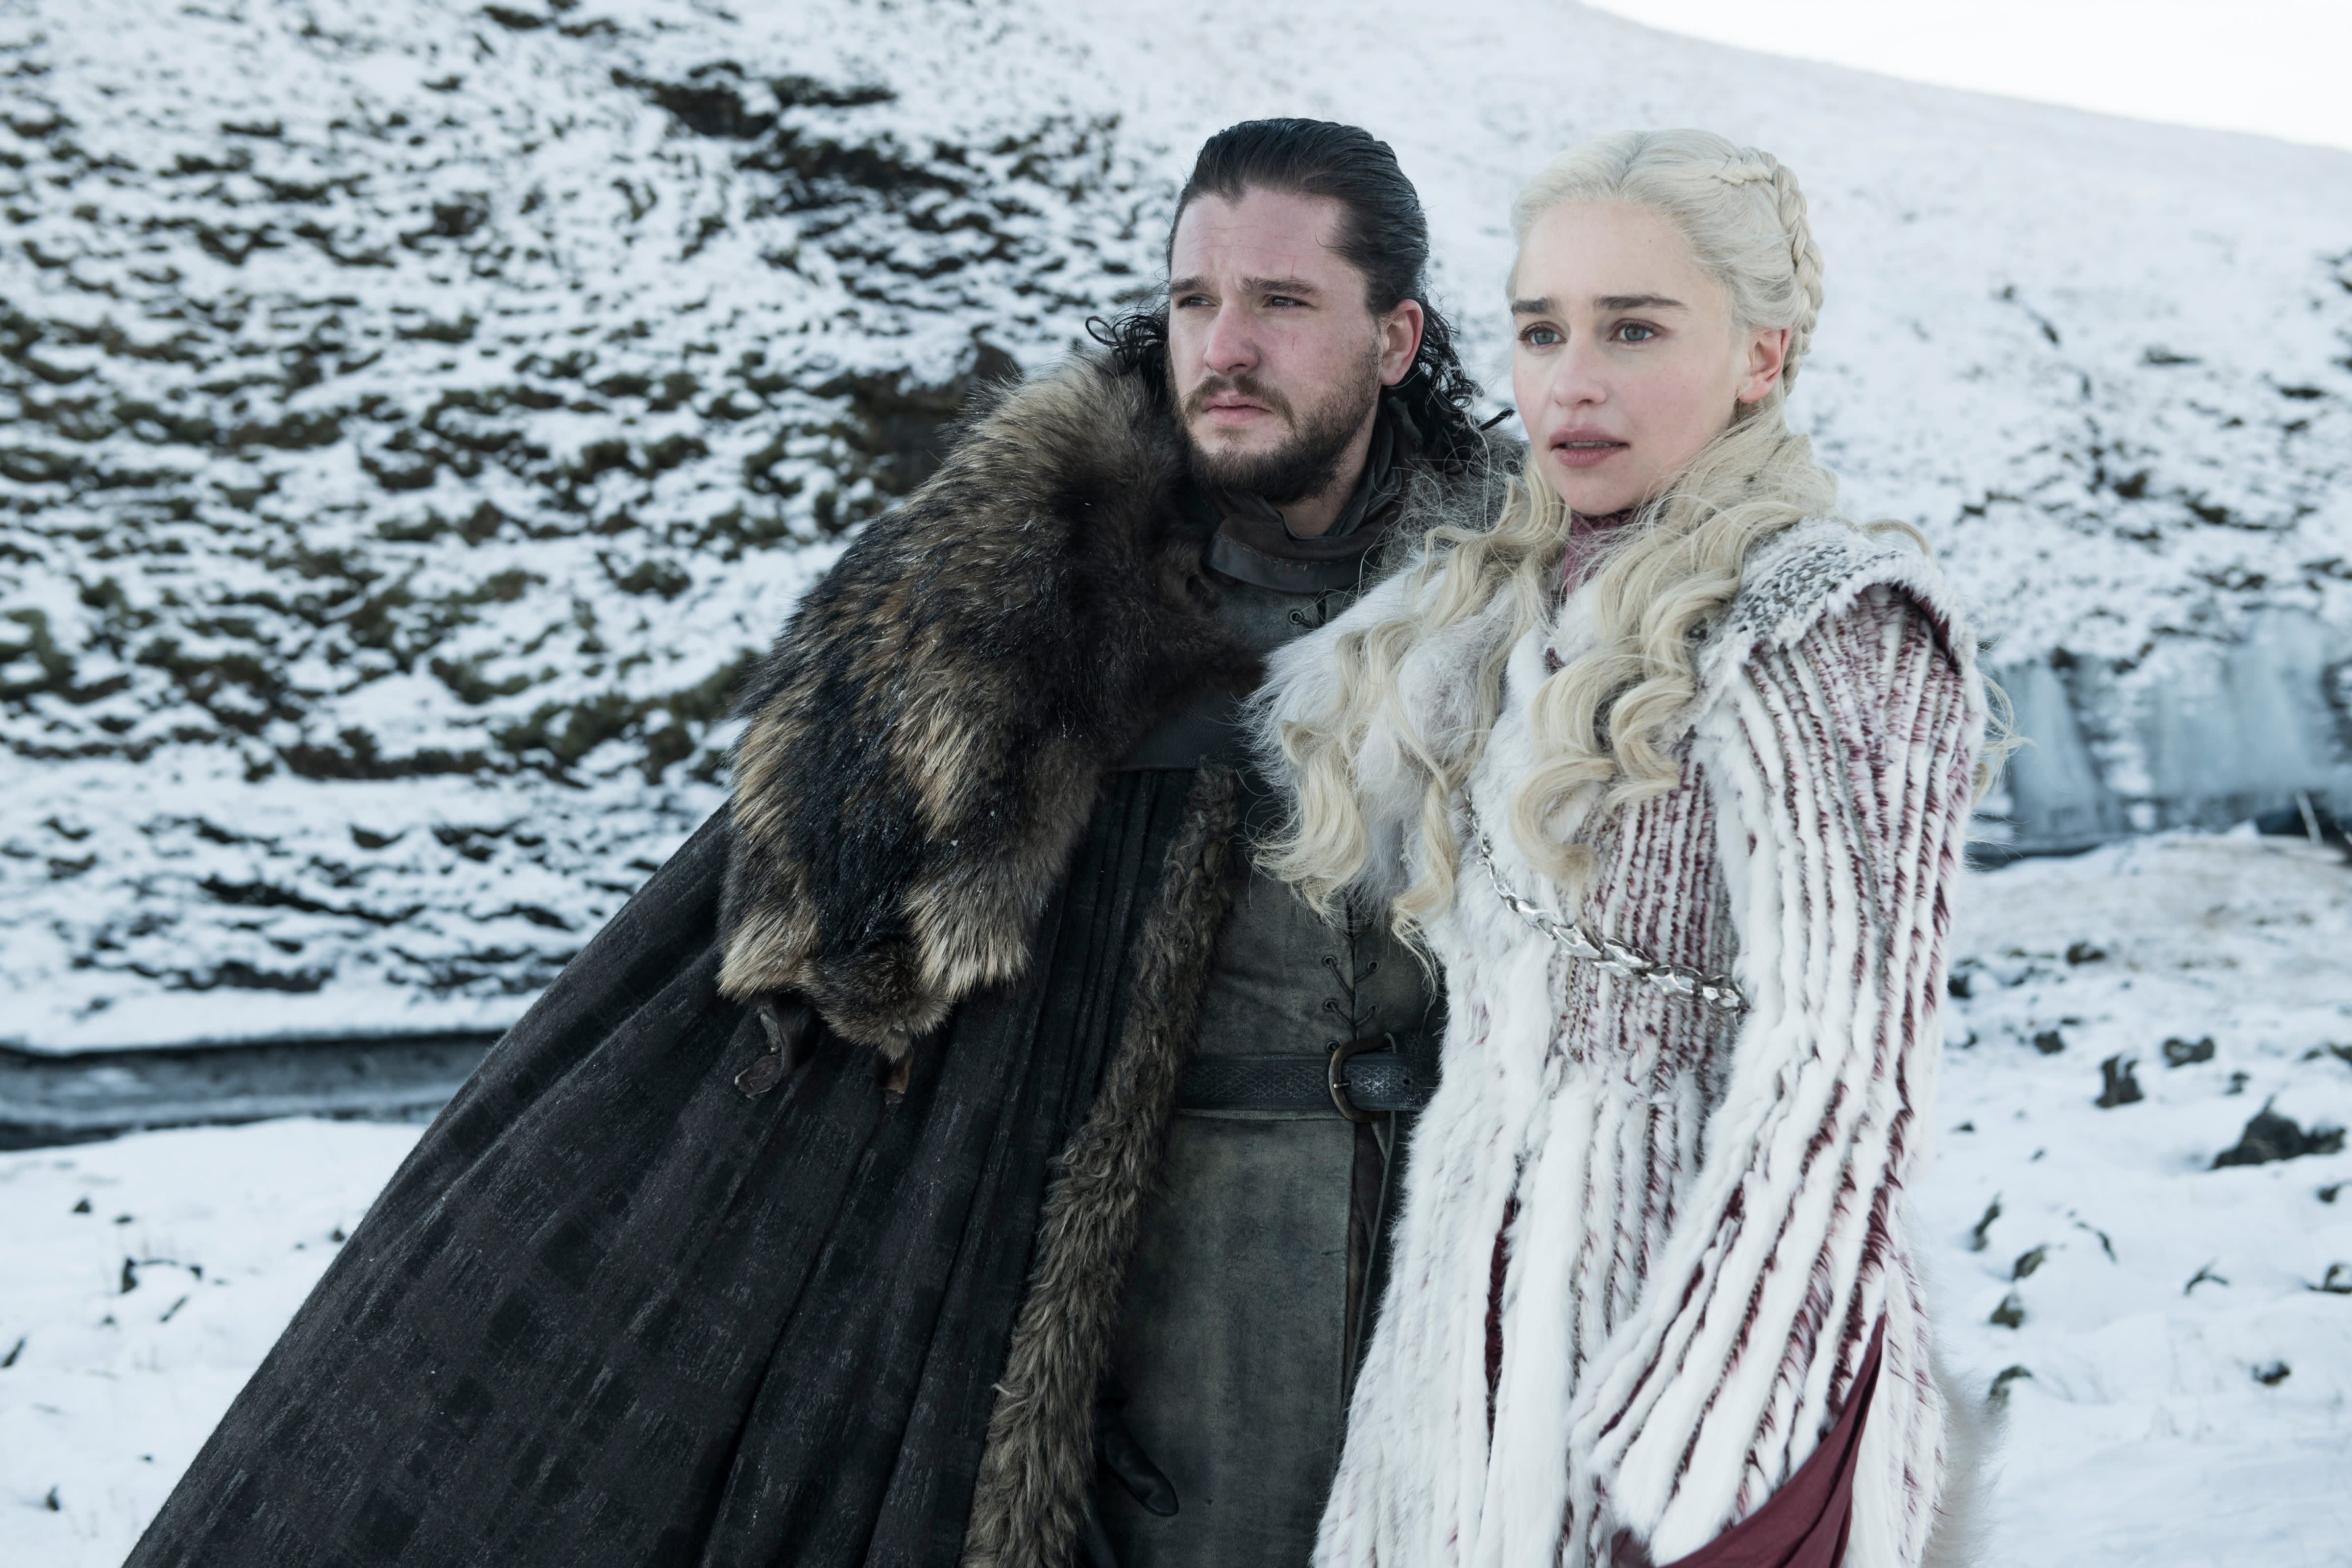 Actors Kit Harington and Emilia Clarke on the set of the eighth season of Game of Thrones.